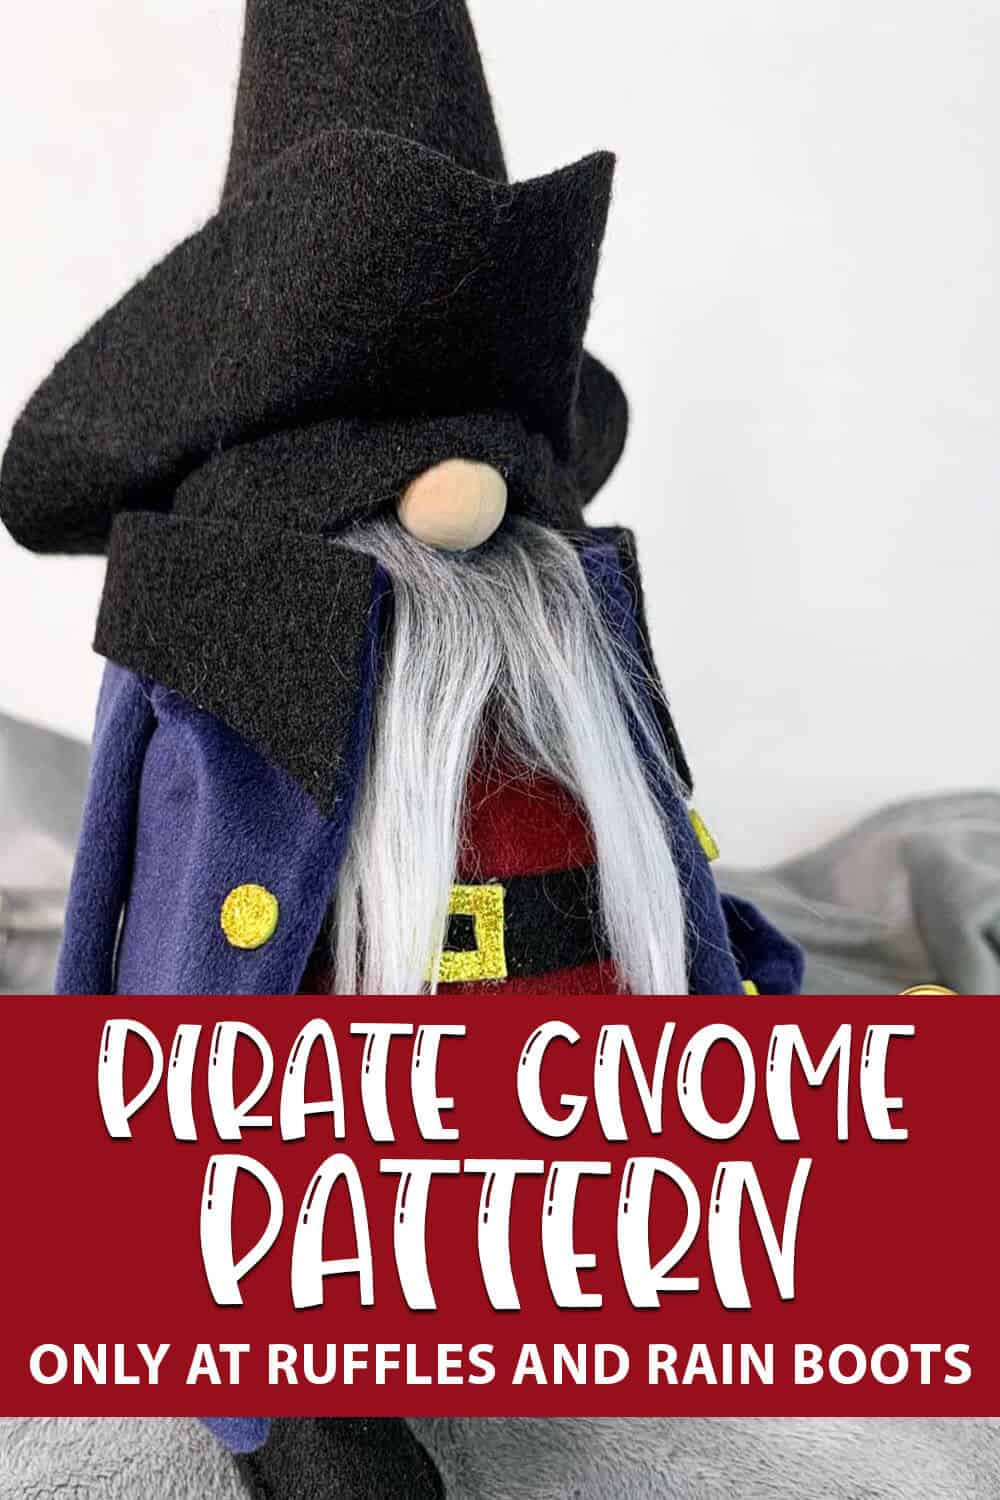 easy no-sew gnome pattern of a pirate with text which reads pirate gnome pattern